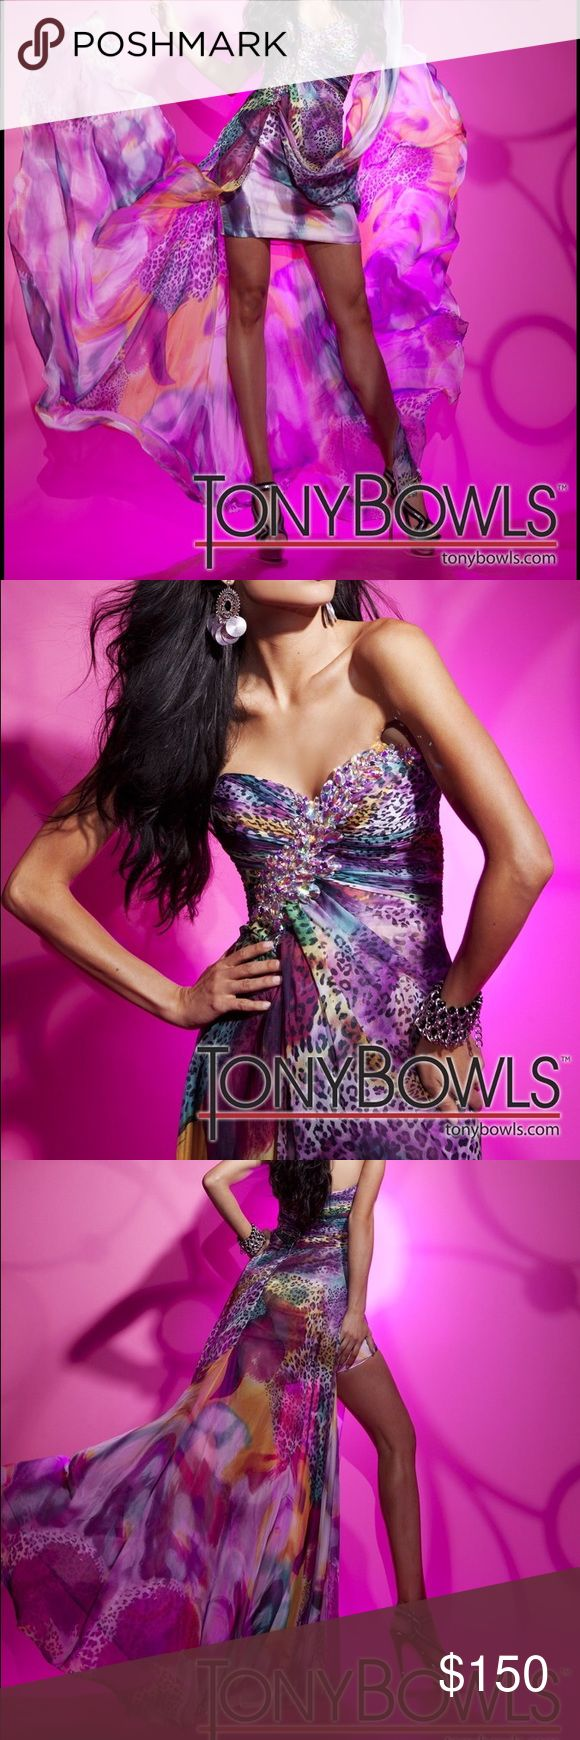 Tony Bowls prom dress Multicolor high-low prom dress by Tony Bowls. Worn once. Perfect Condition. Tony Bowls Dresses Prom